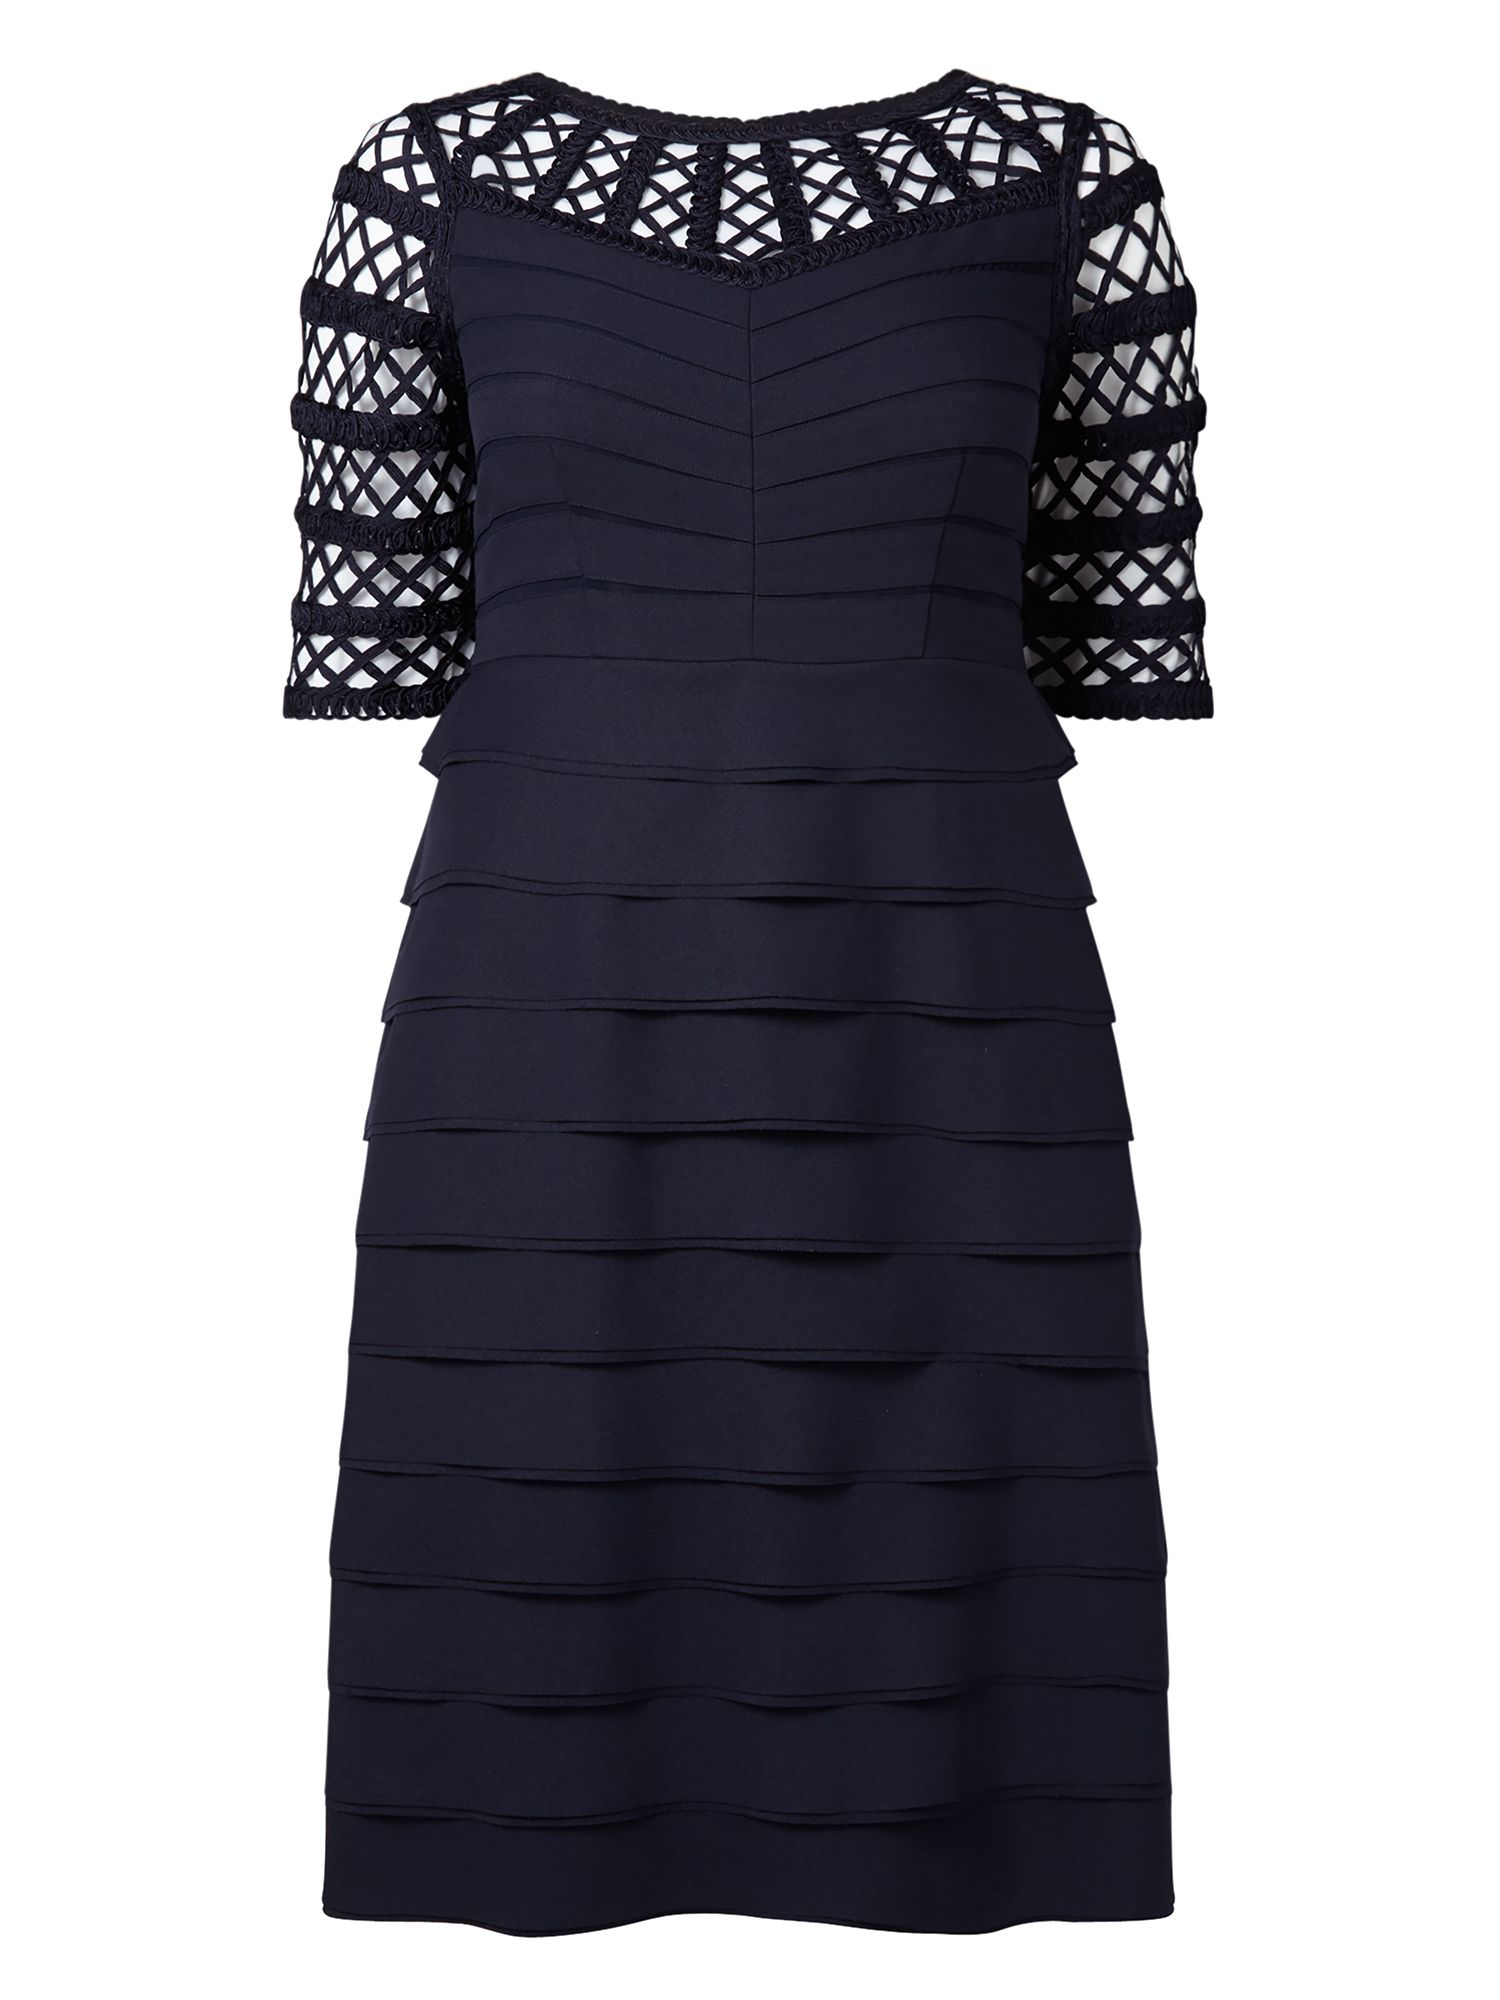 Studio 8 Sienna Dress, Blue